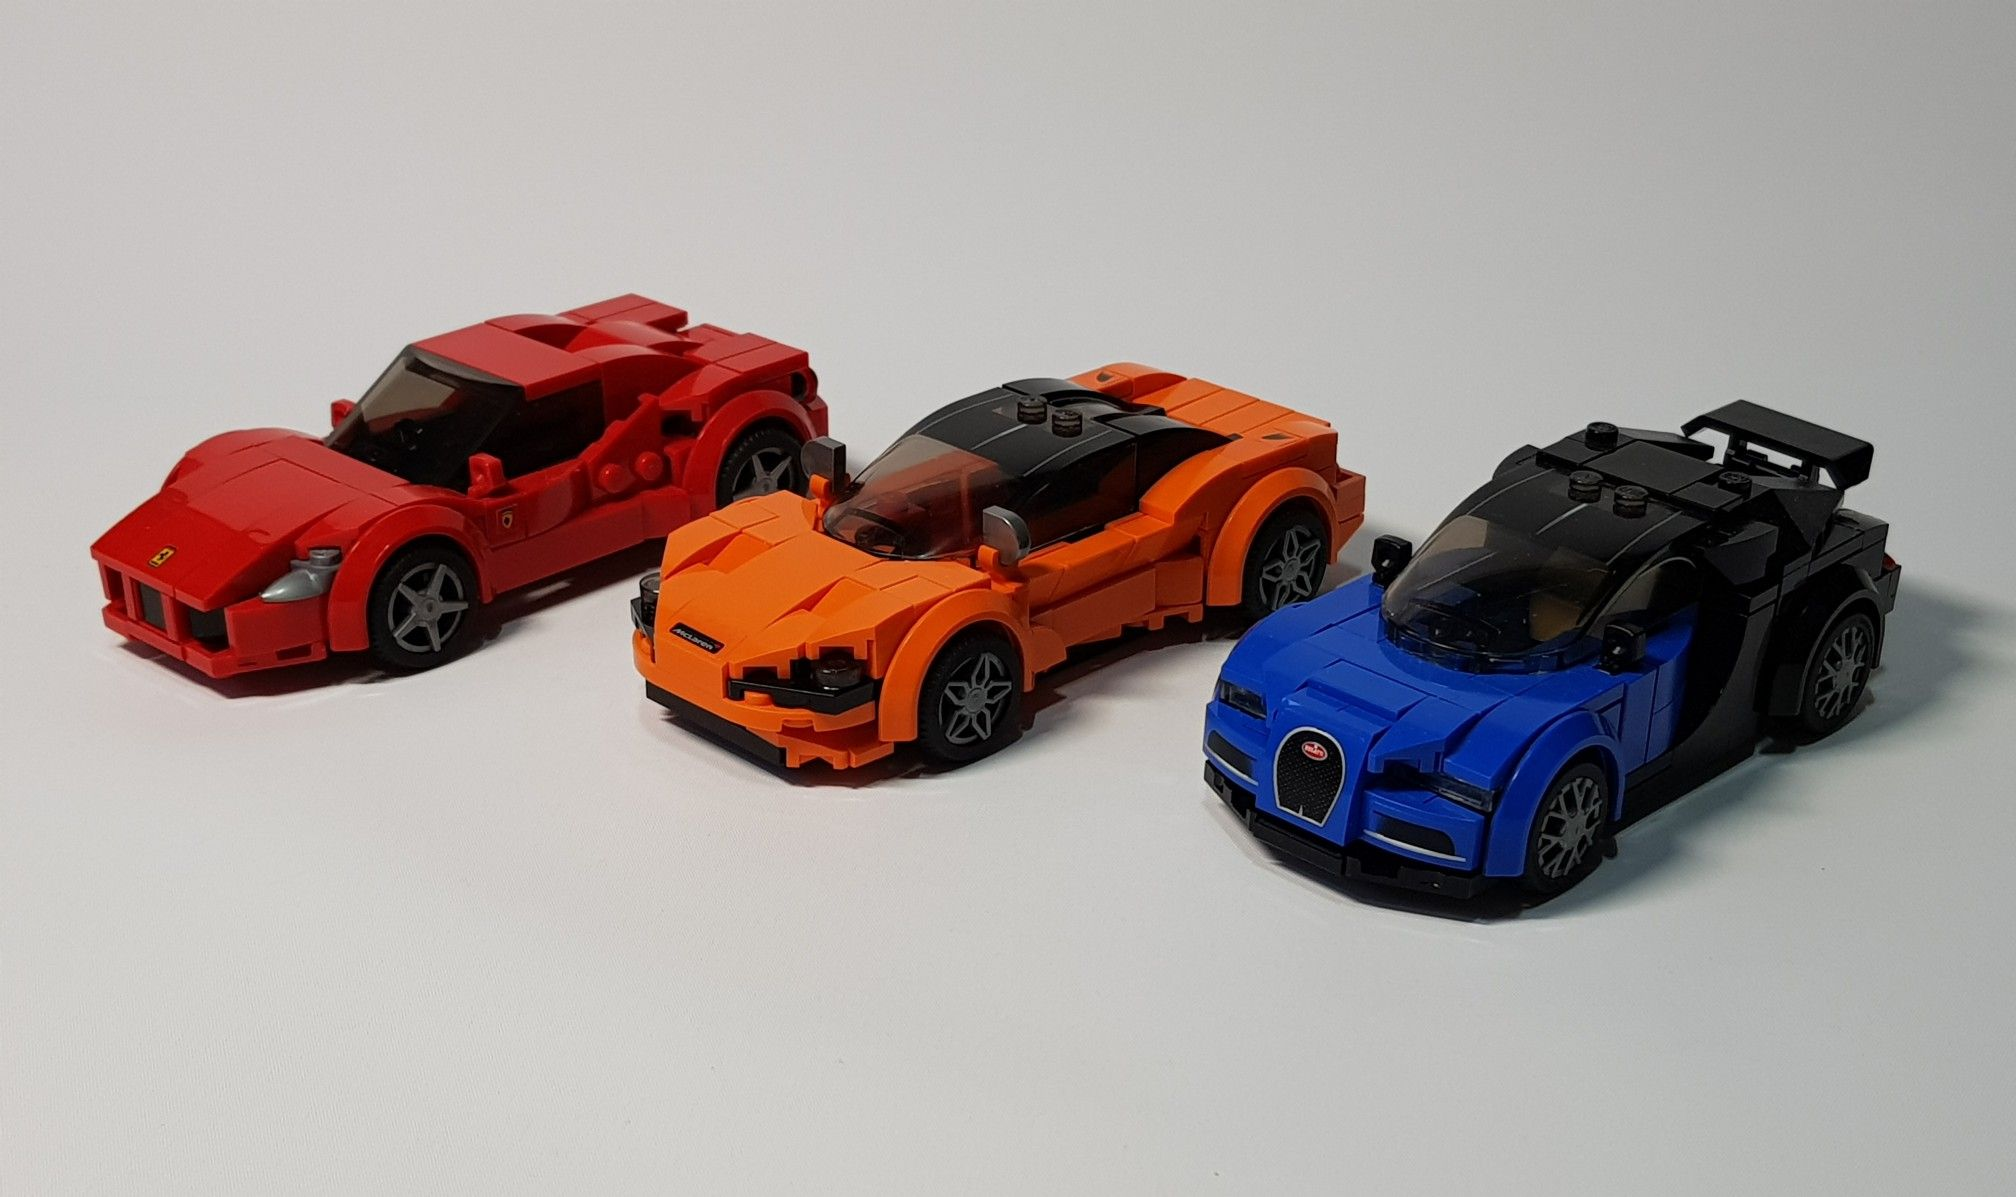 Supercar Collection Novemberjuliett Flickr Lego Cars Lego Motorbike Lego Models